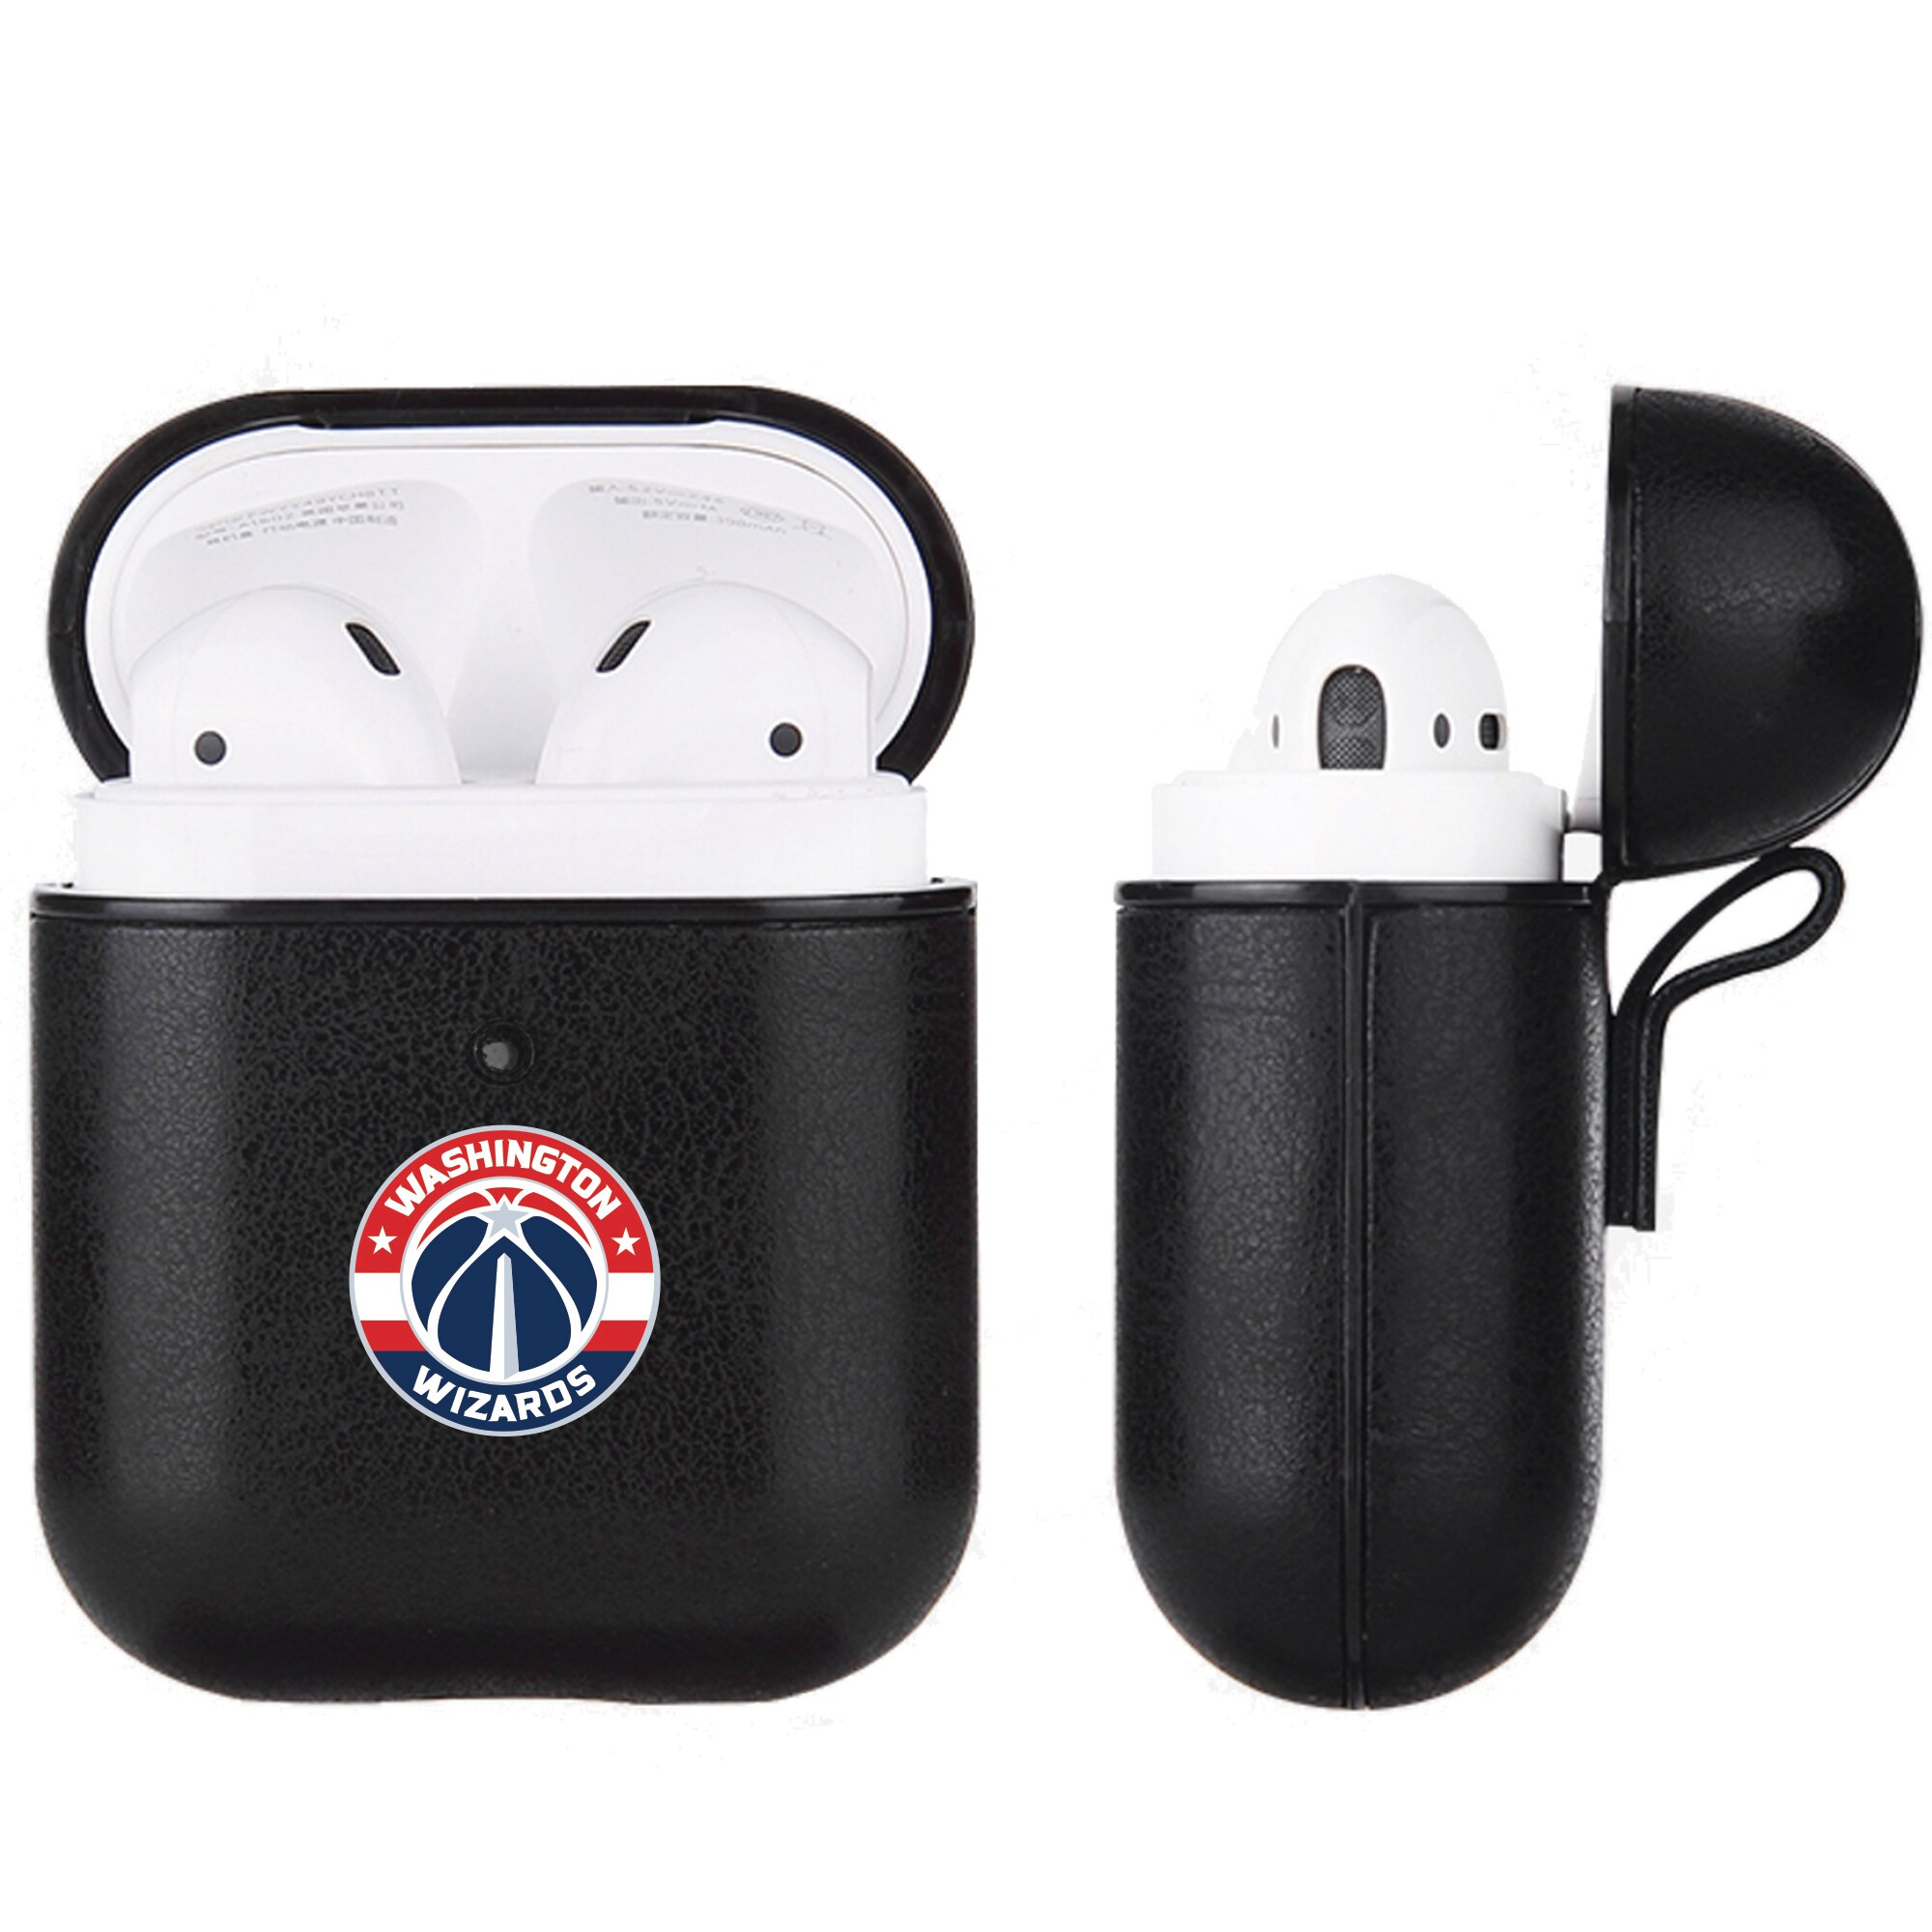 Washington Wizards Air Pods Black Leatherette Case